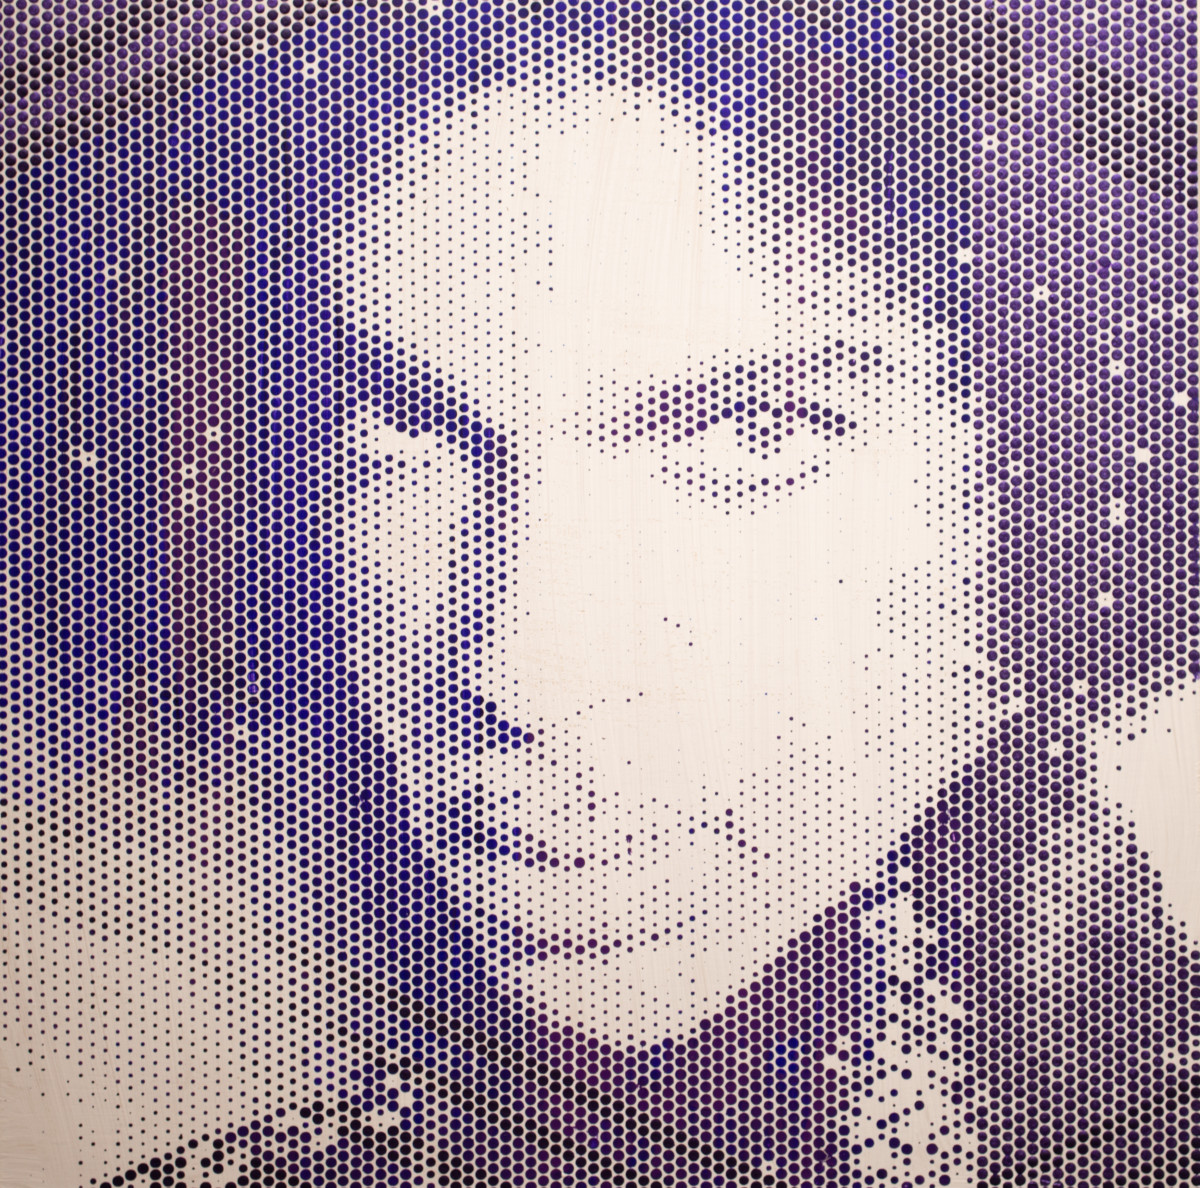 Prince I by Sean Christopher Ward